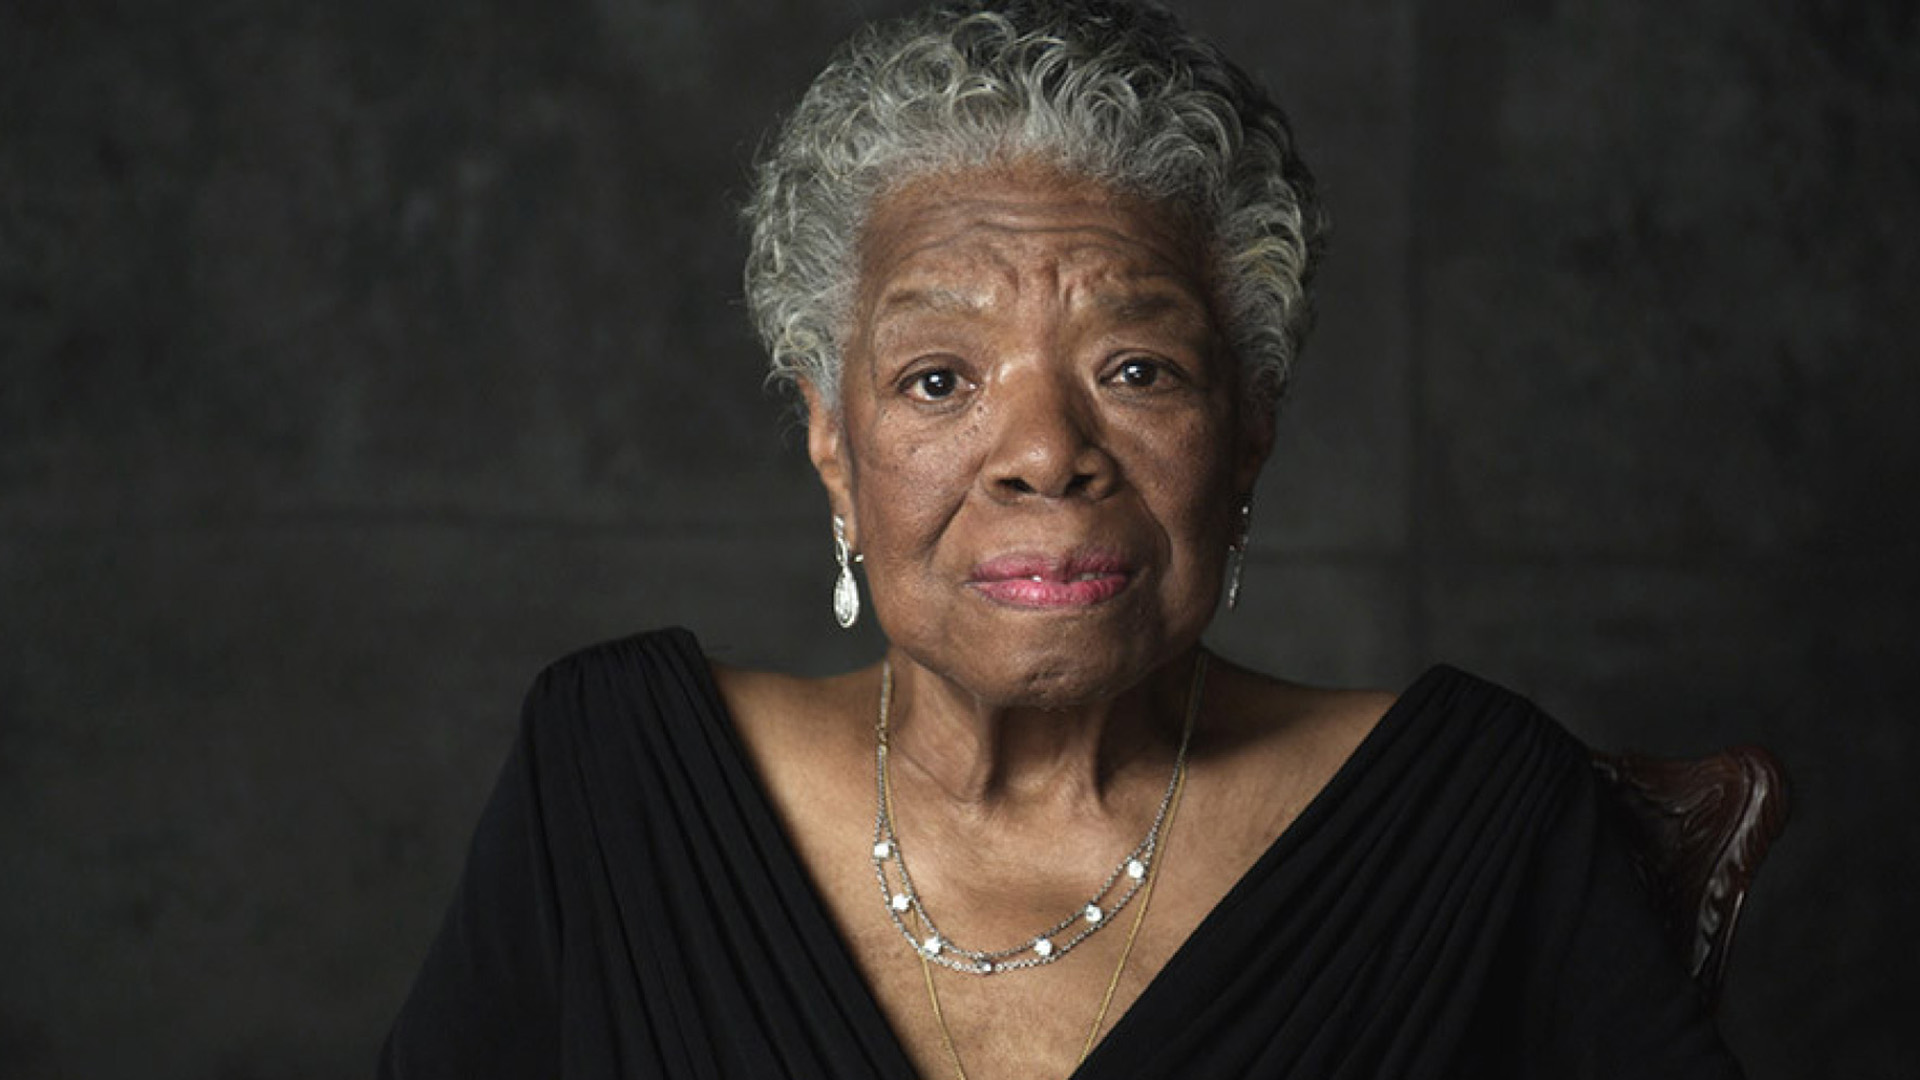 Boundary-pushing poet, activist Angelou celebrated in documentary